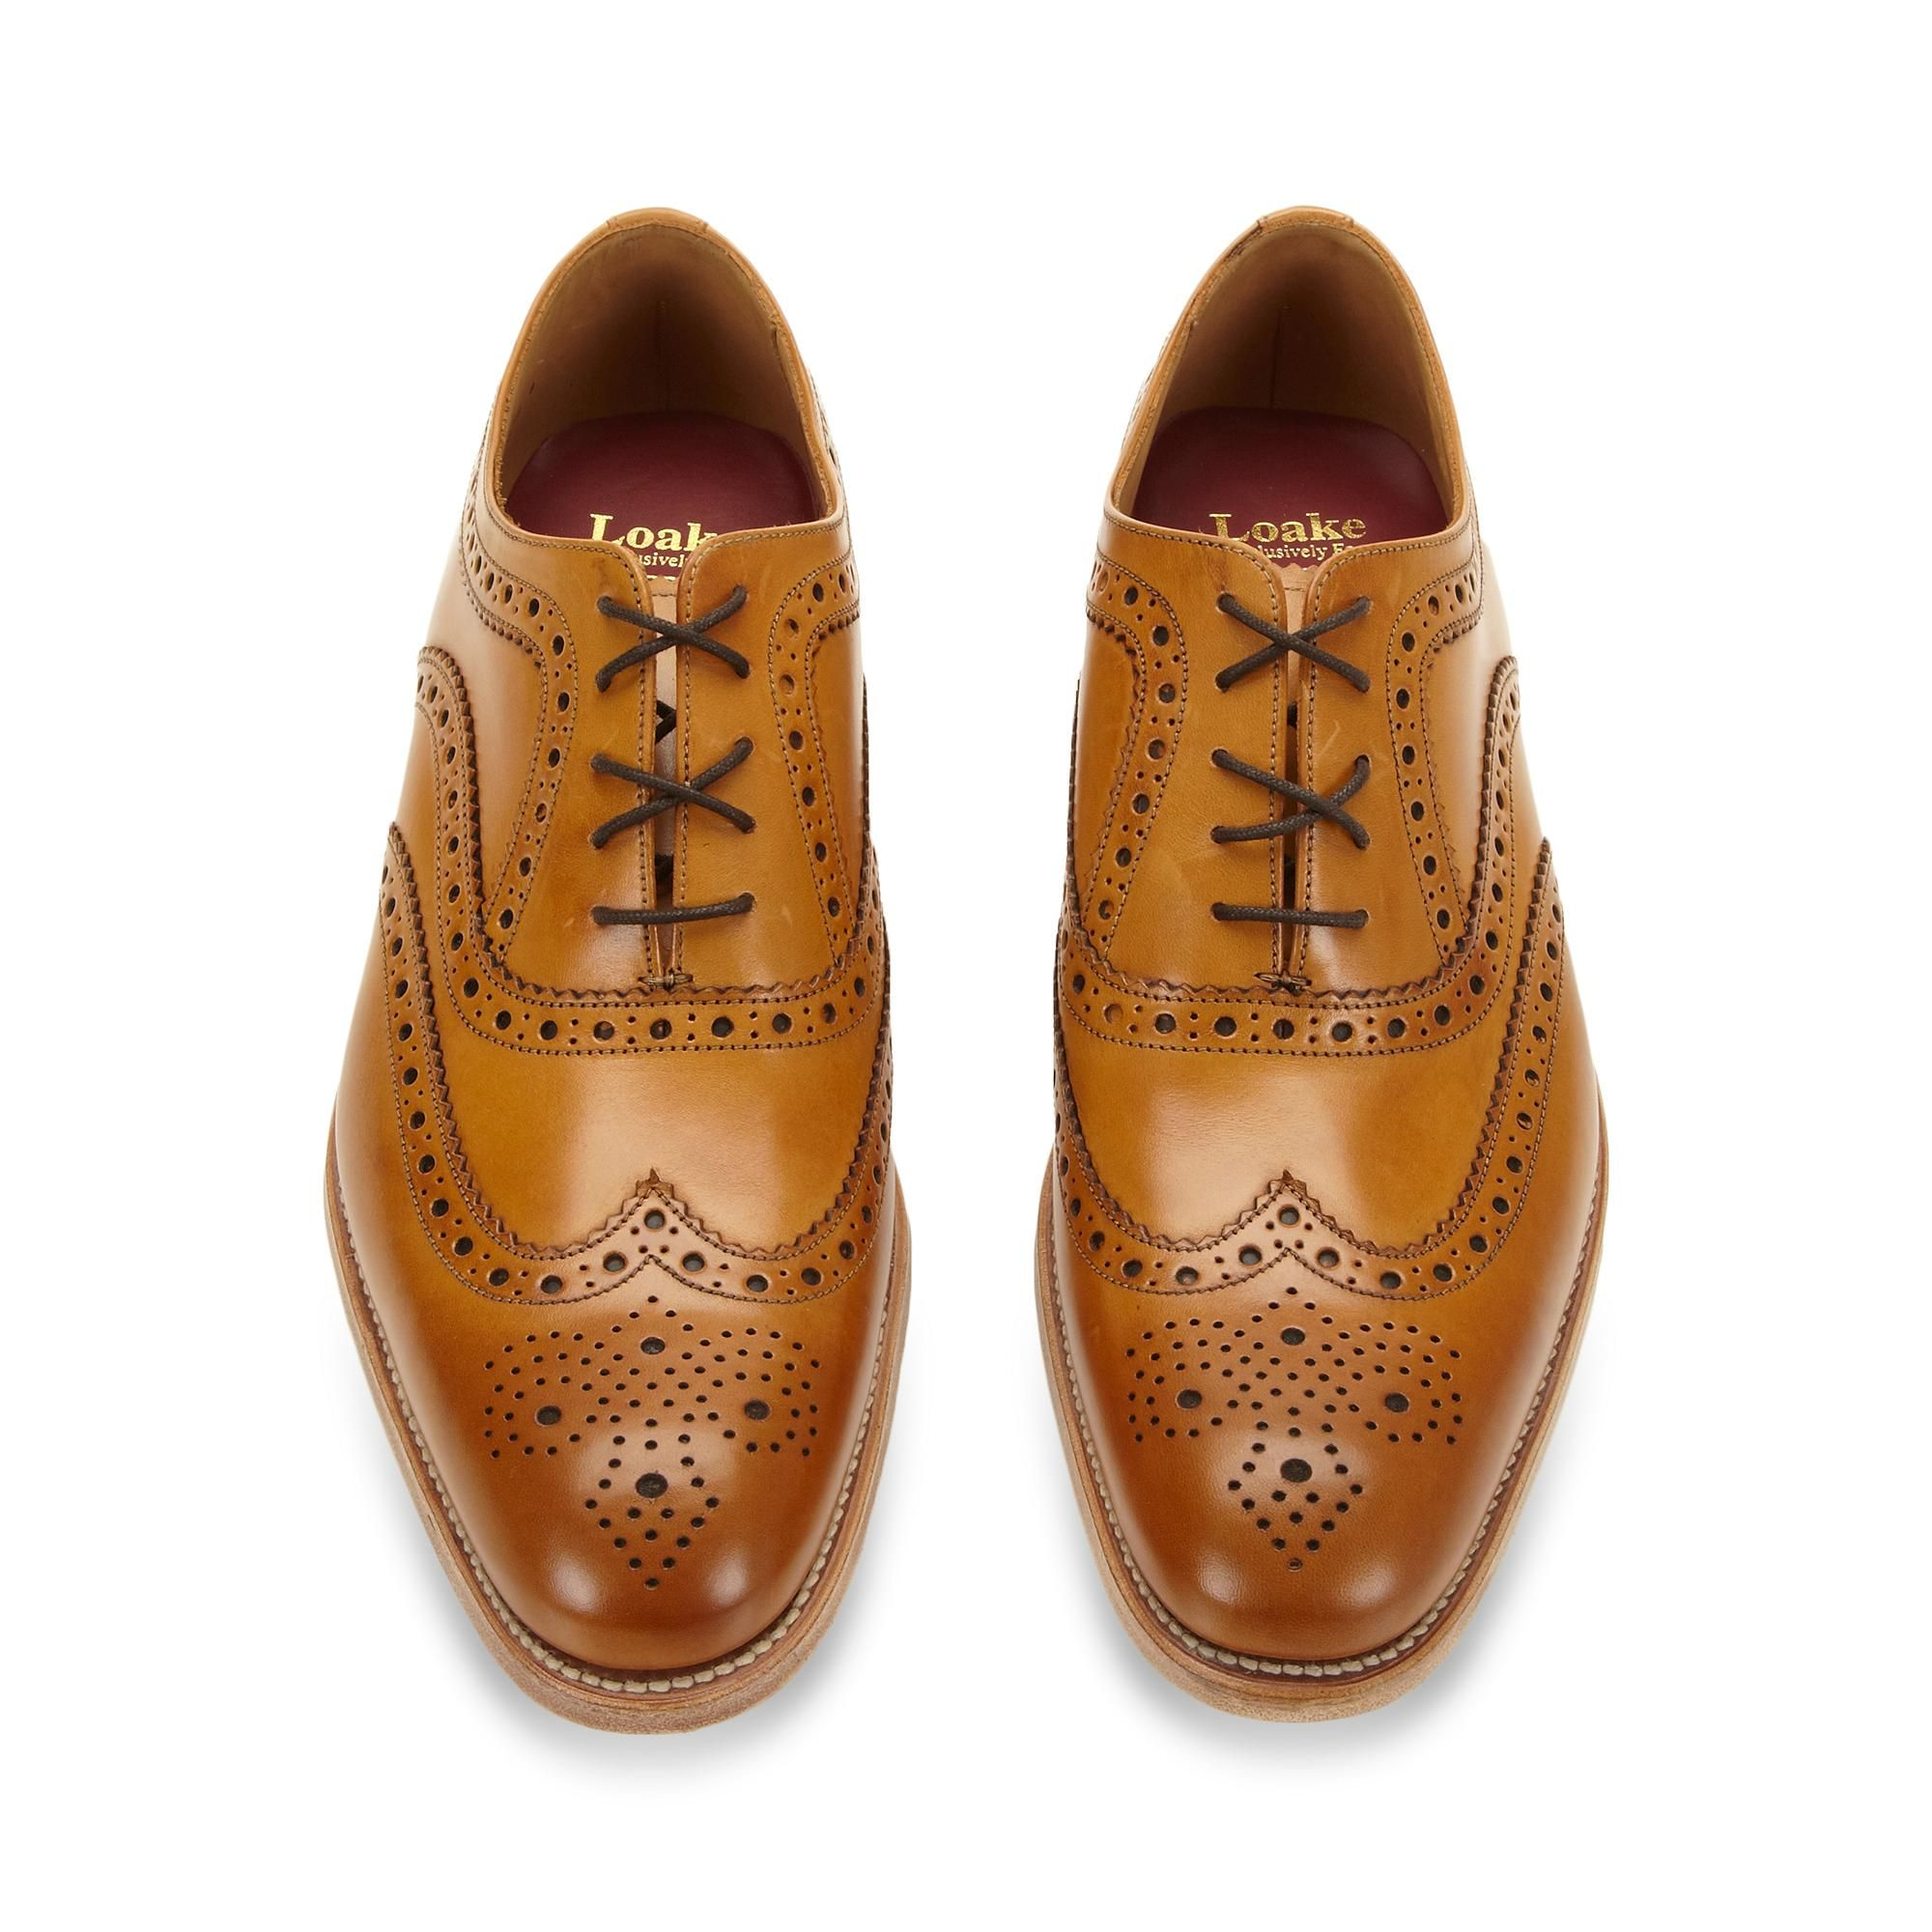 Mens leather gloves at debenhams - Designer Tan Leather Brogues Brogues Debenhams Com Loake